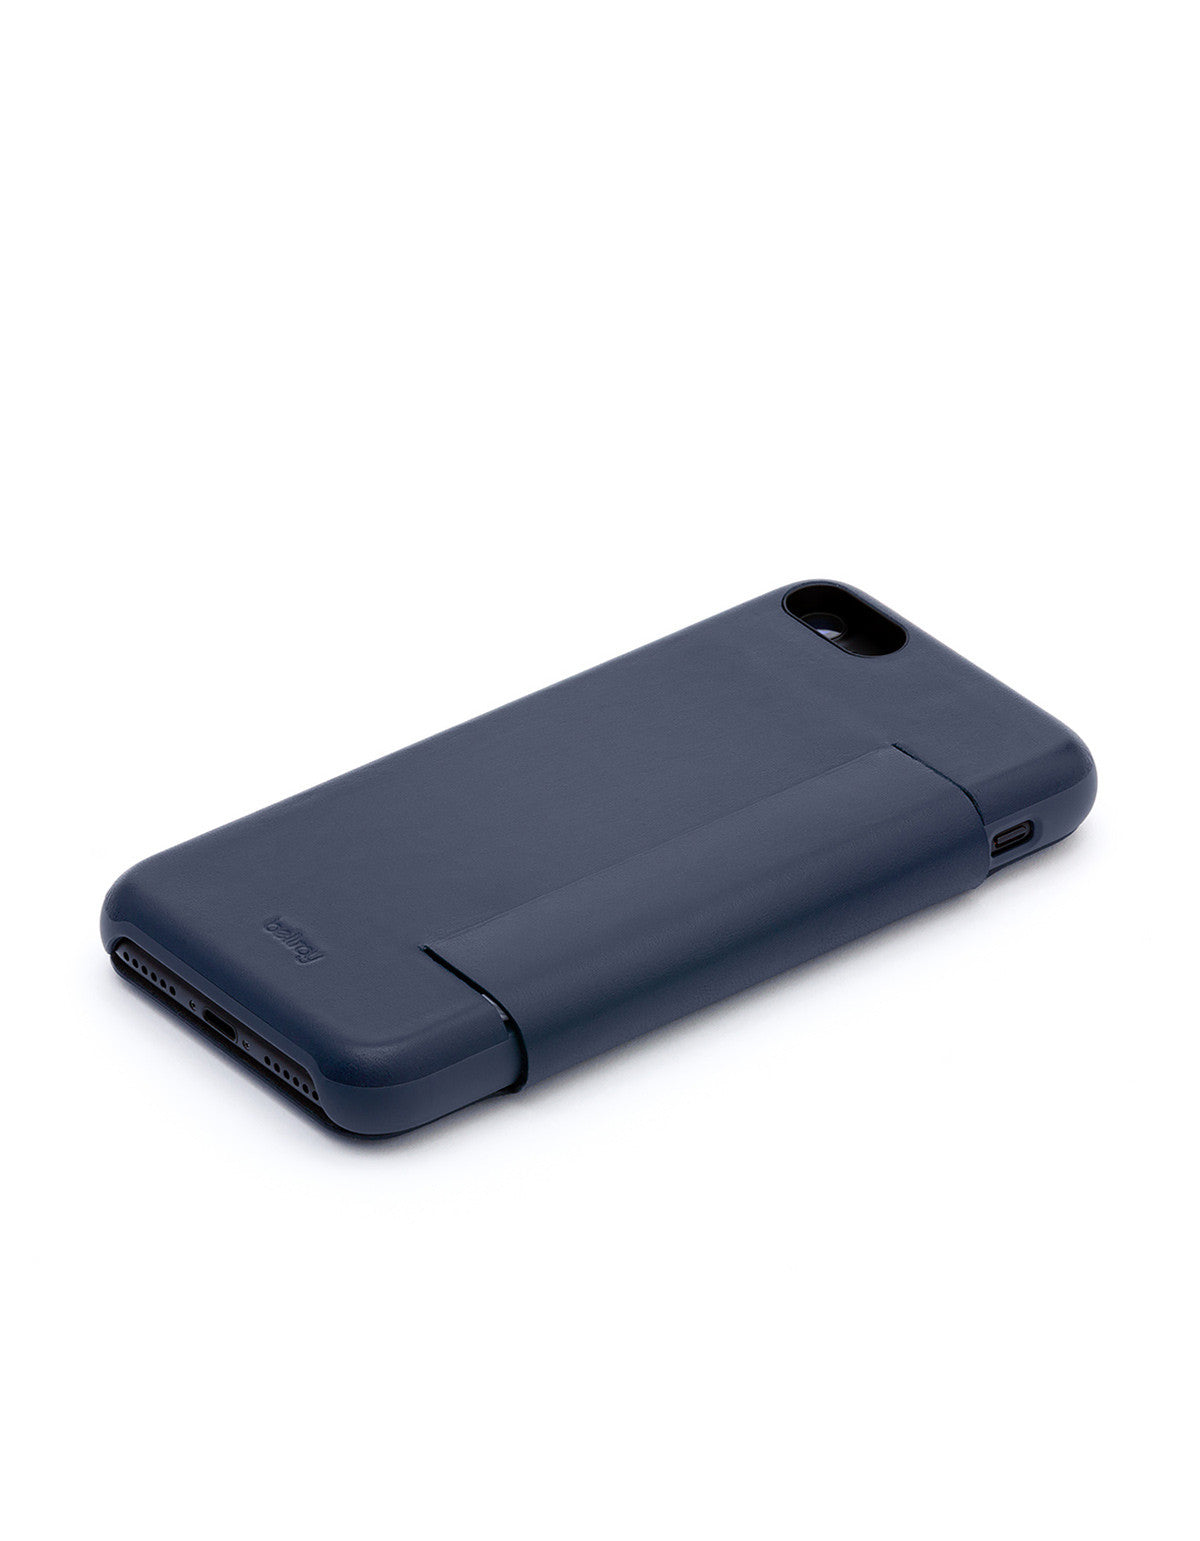 Bellroy Phone Wallet i7 Blue Steel - Still Life - 3